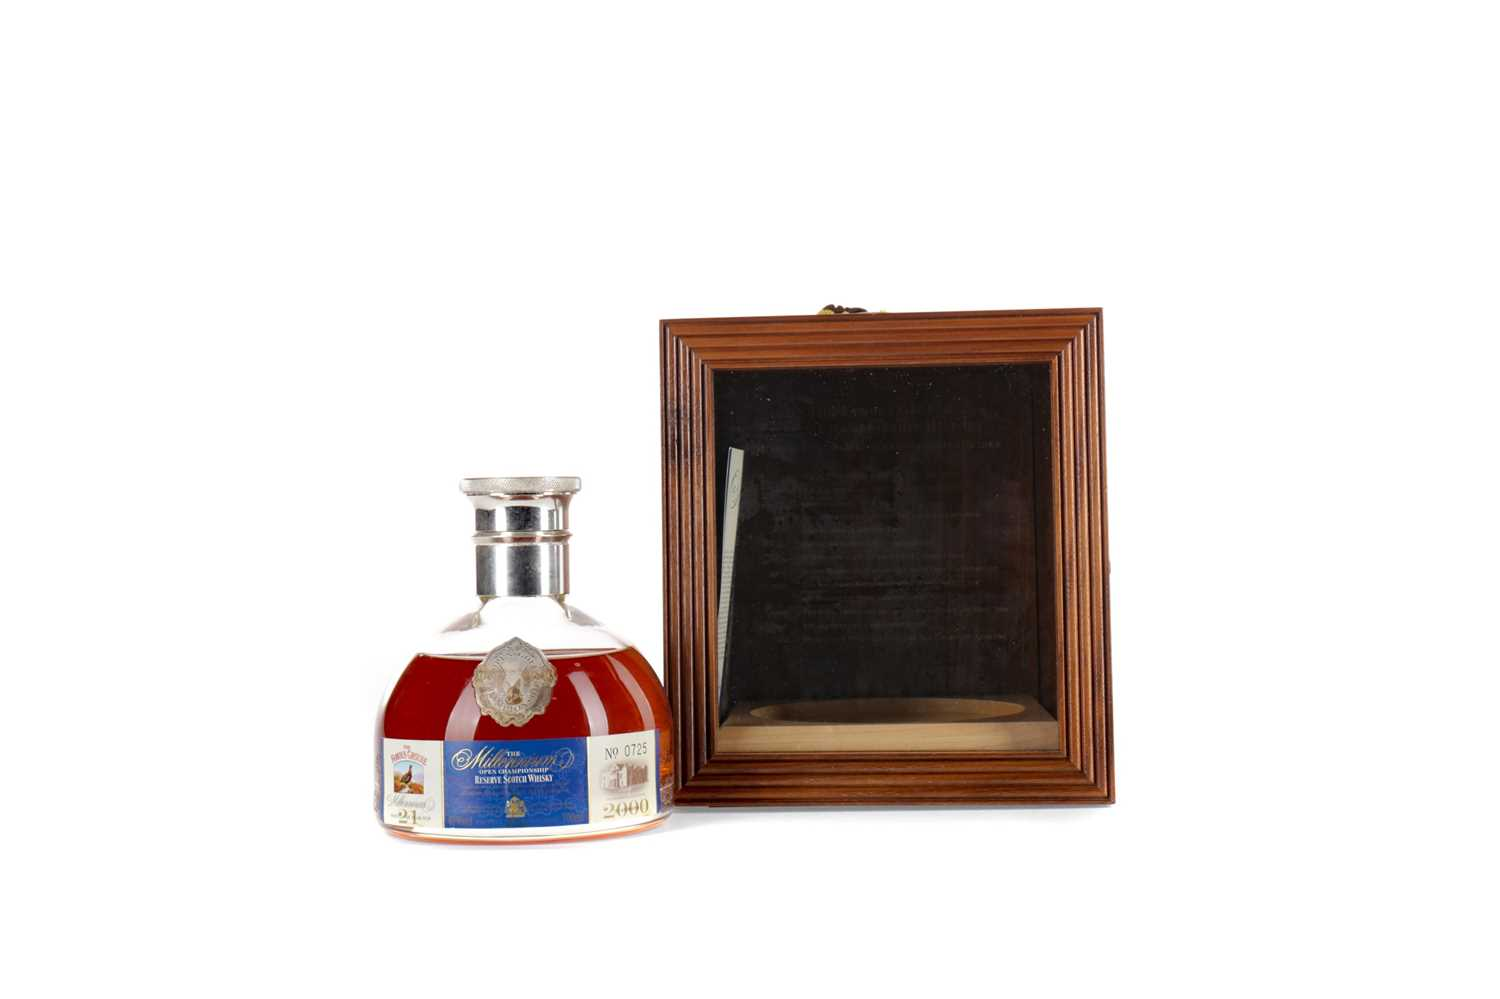 Lot 70 - THE FAMOUS GROUSE MILLENNIUM DECANTER 21 YEARS OLD - OPEN GOLF CHAMPIONSHIP